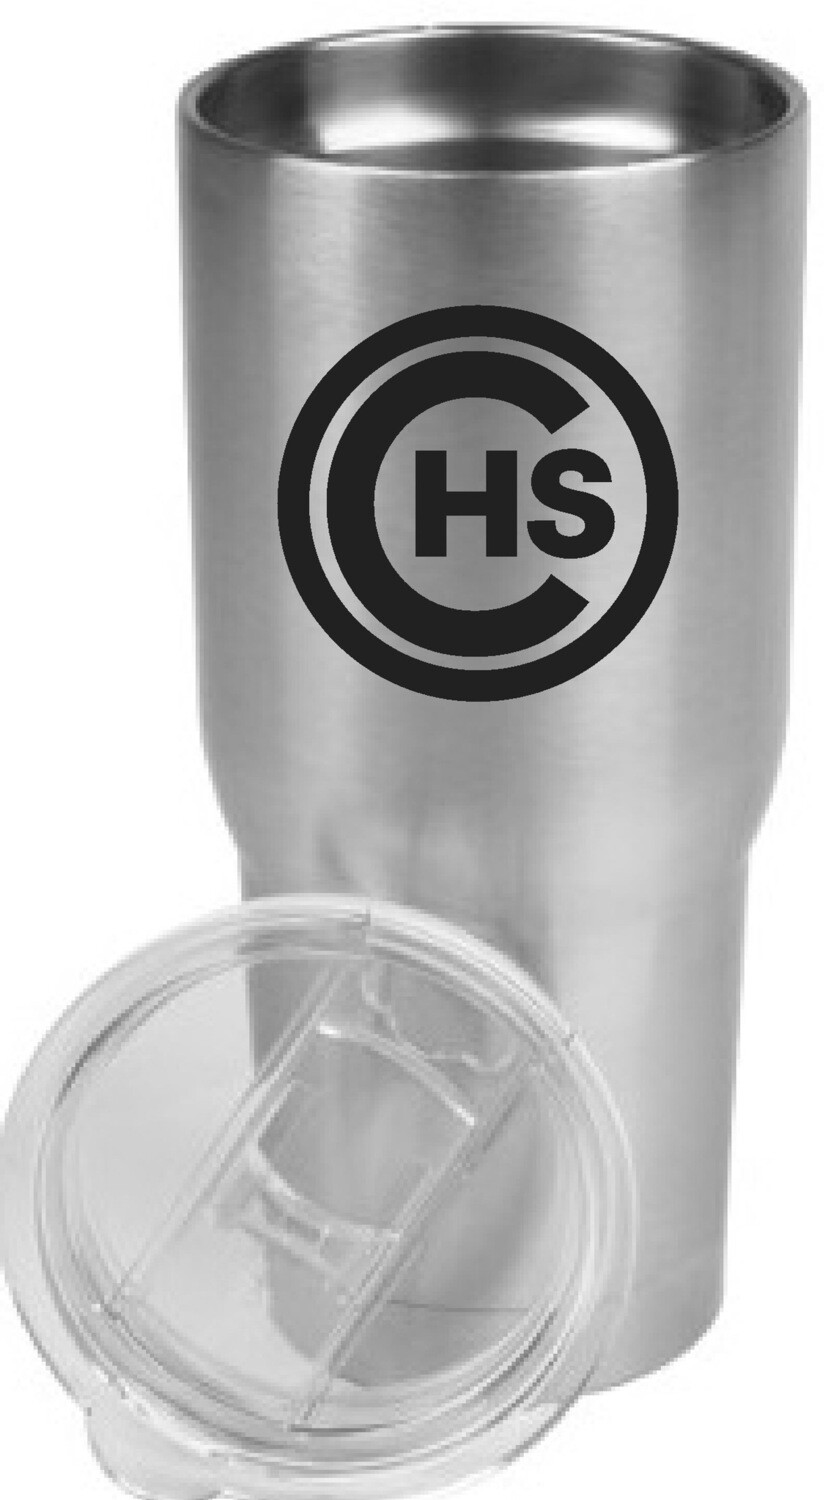 CHS 22 Oz. Stainless Steel Tumbler, Preorder only till Tuesday, November 24th. It will be delivered before Holiday Break.